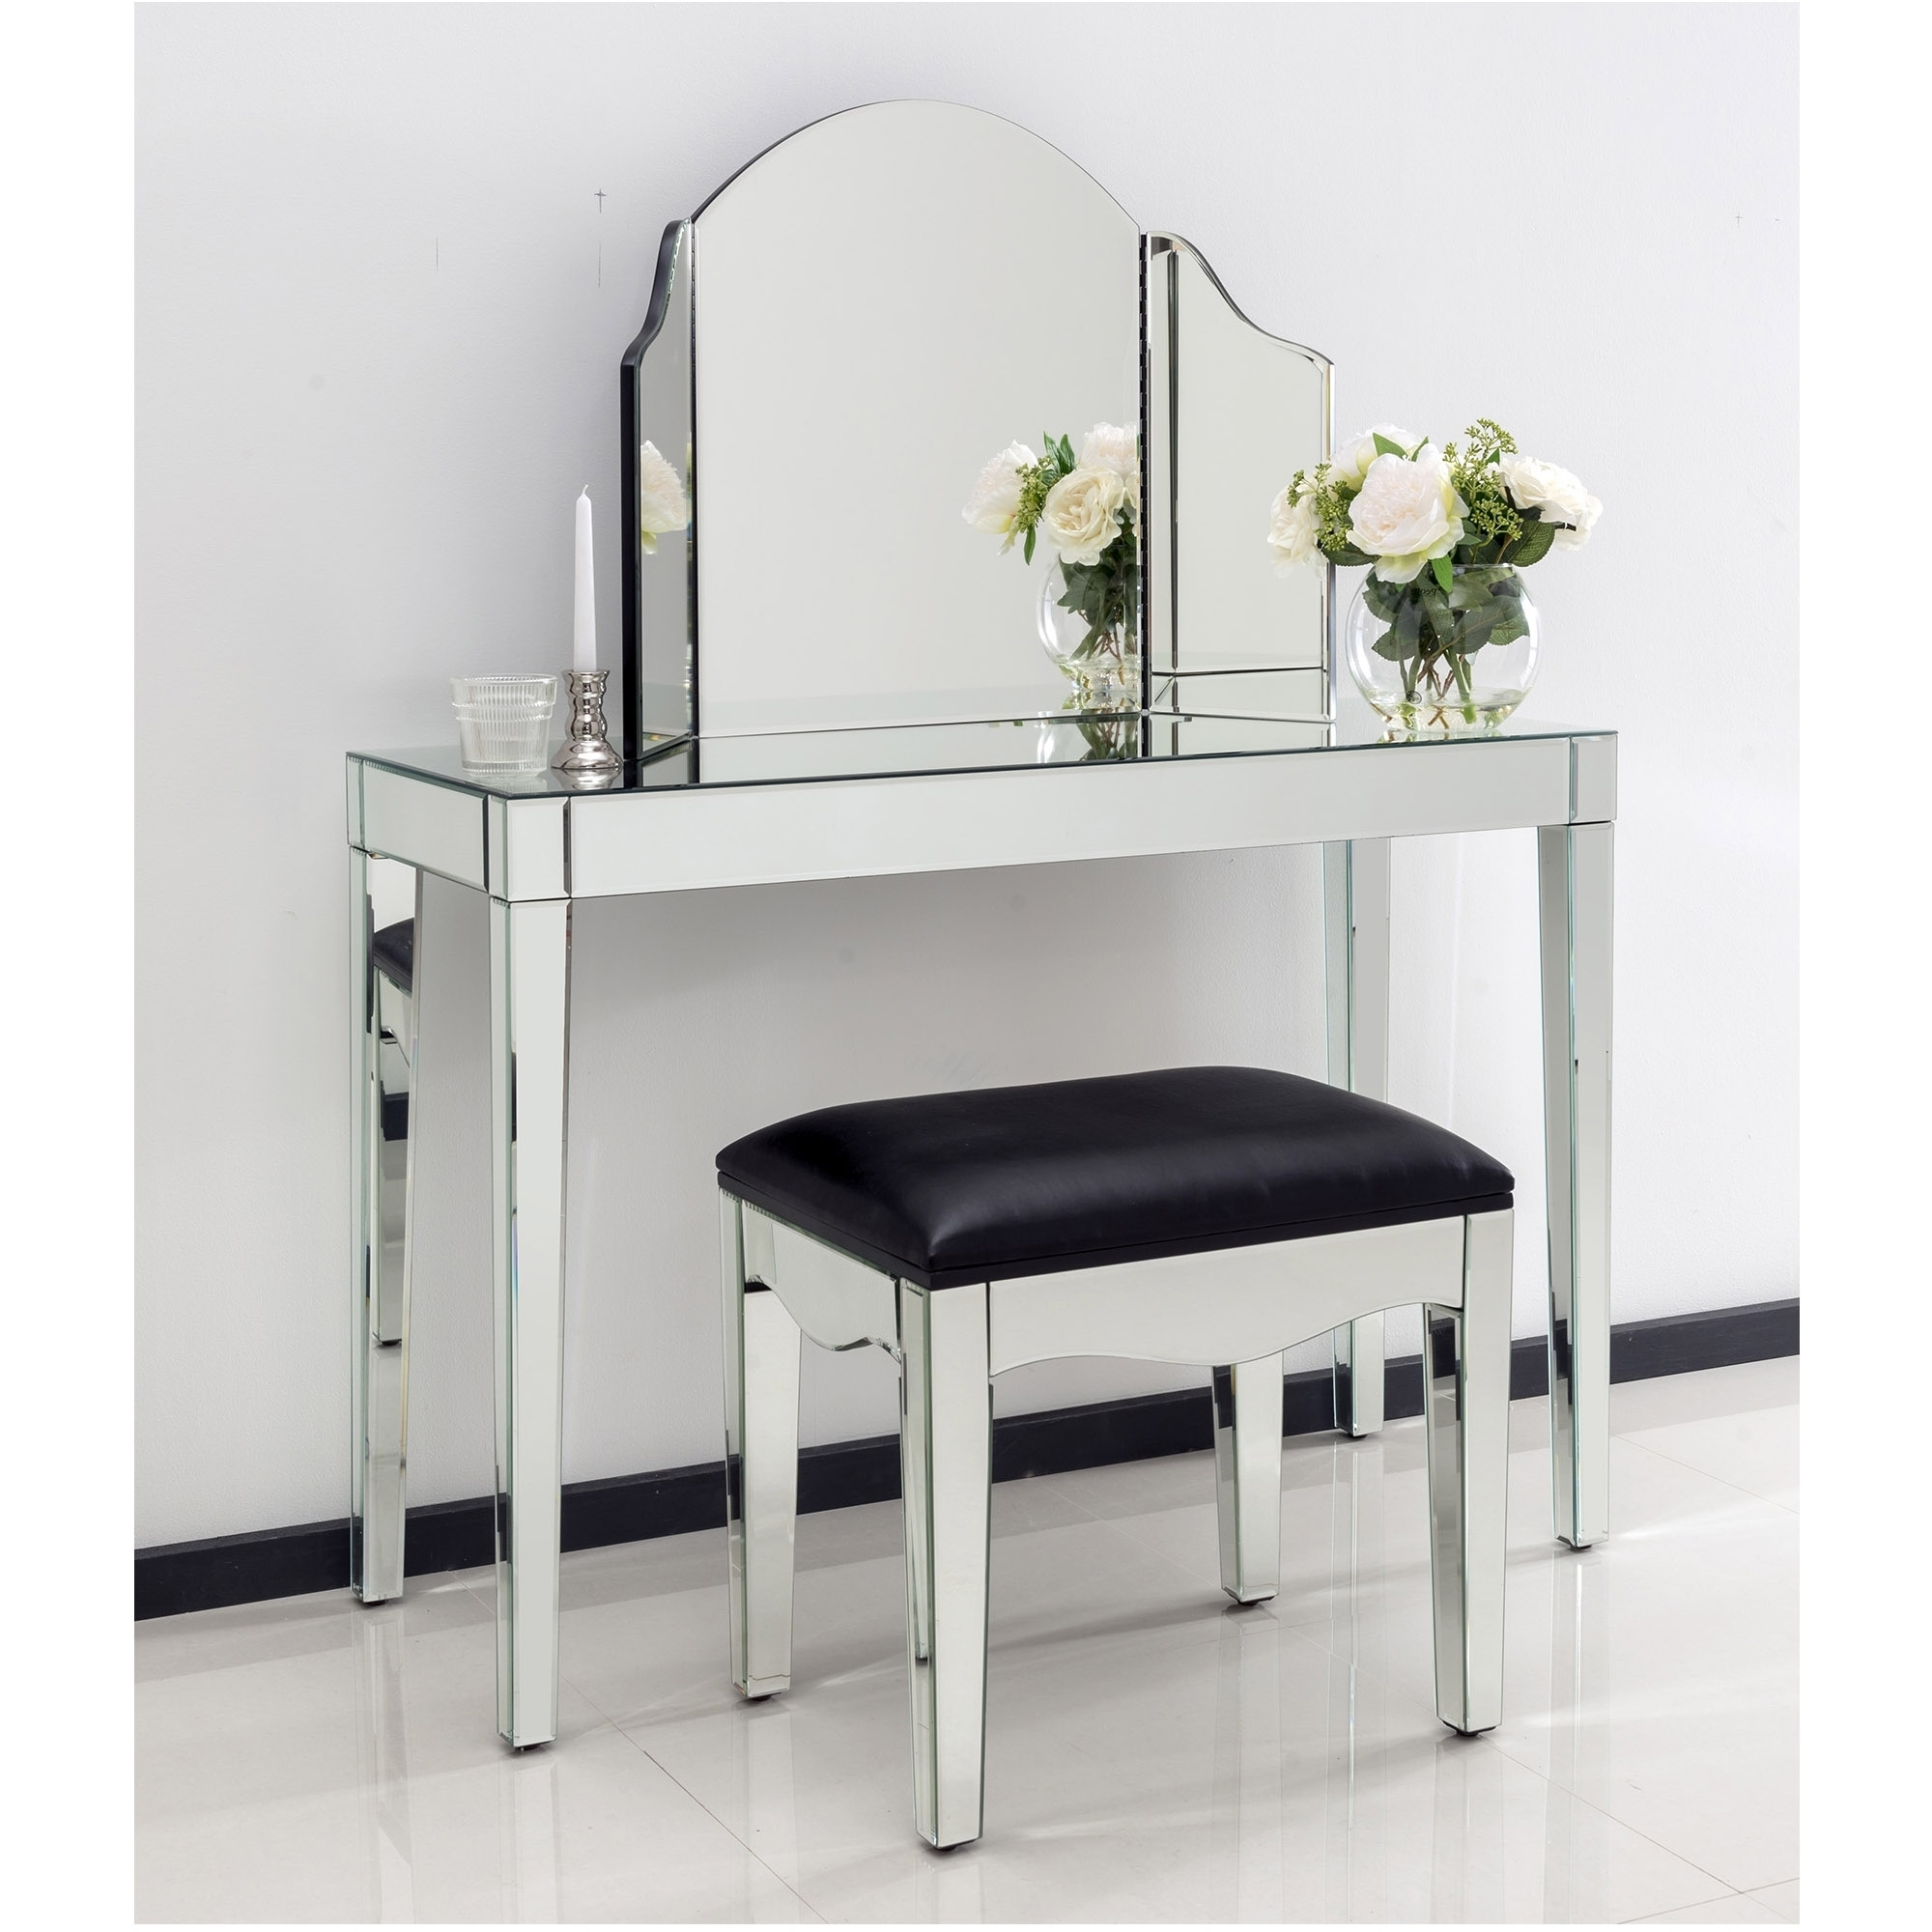 Romano mirrored console table set glass furniture romano mirrored console table set geotapseo Image collections